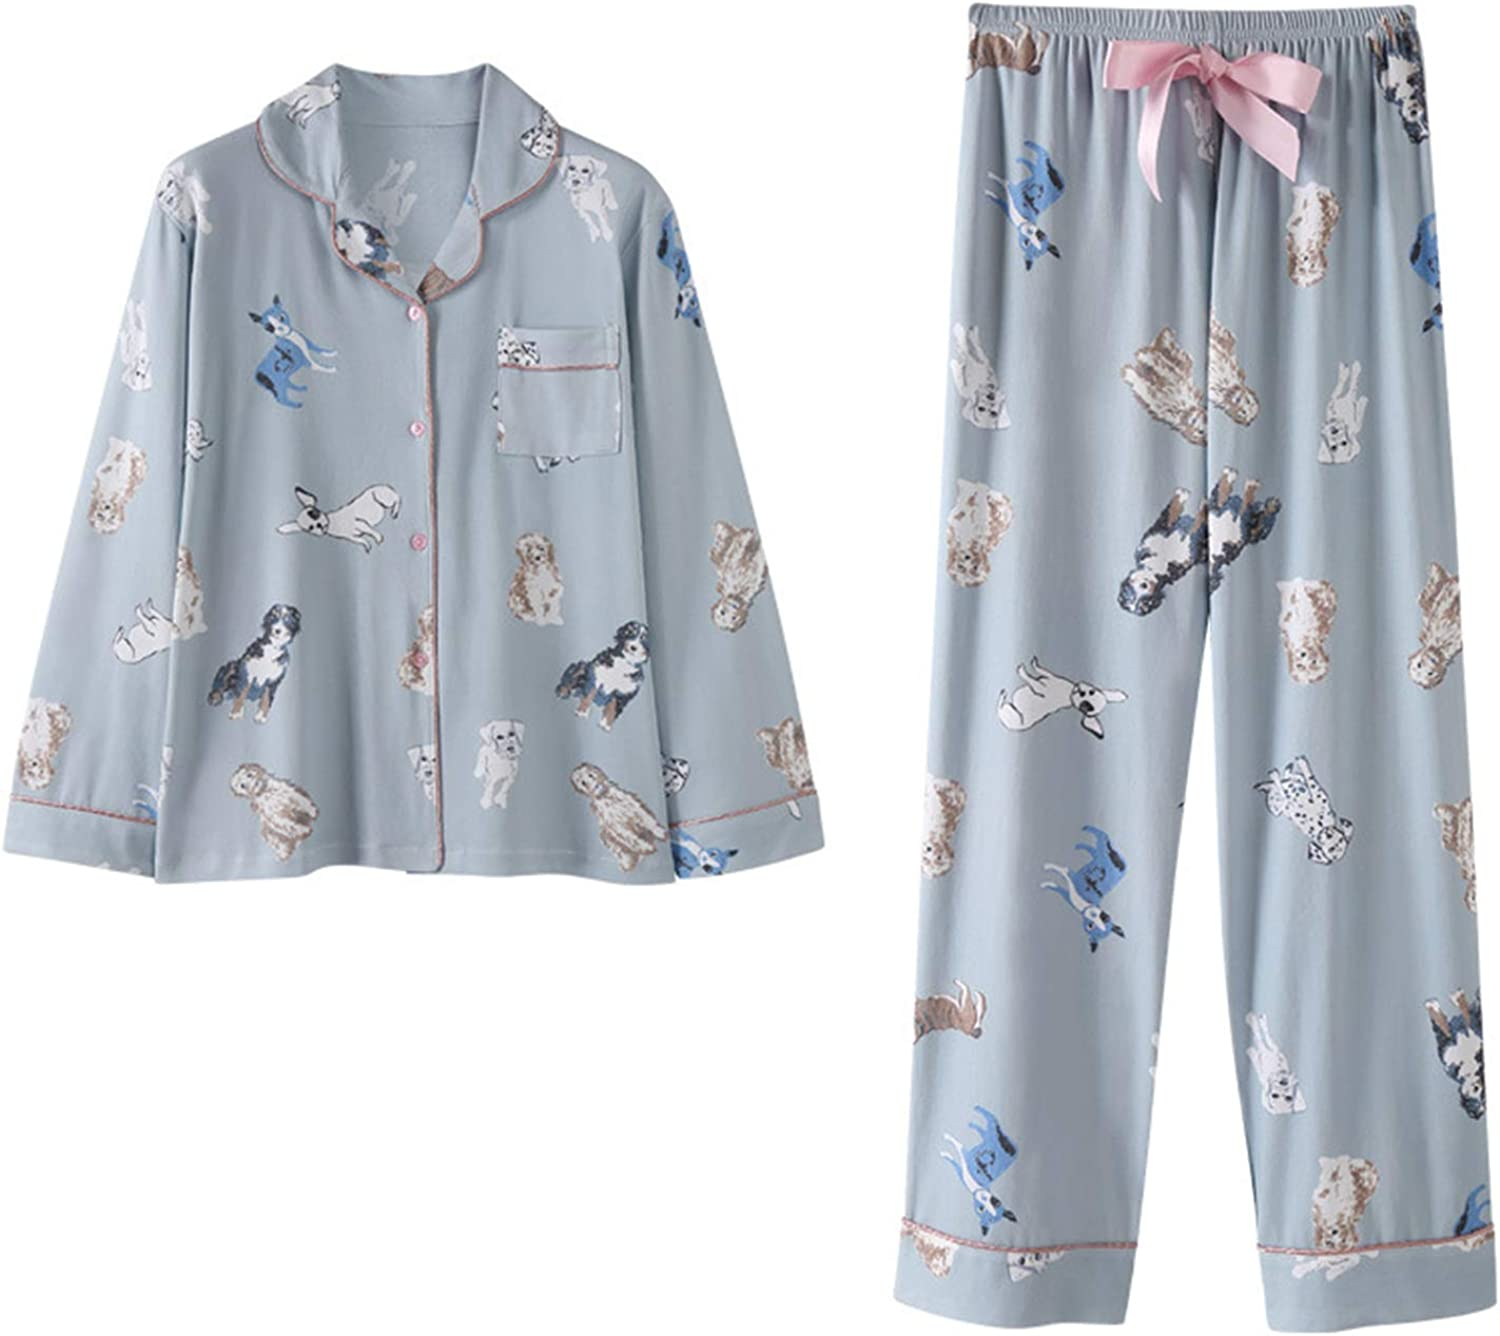 Autumn Winter Knitted Long Sleeve Pajamas Cute Stylish Warm Loungewear with Collar Home Daily Bedroom Livingroom Outwear,Girls Gift